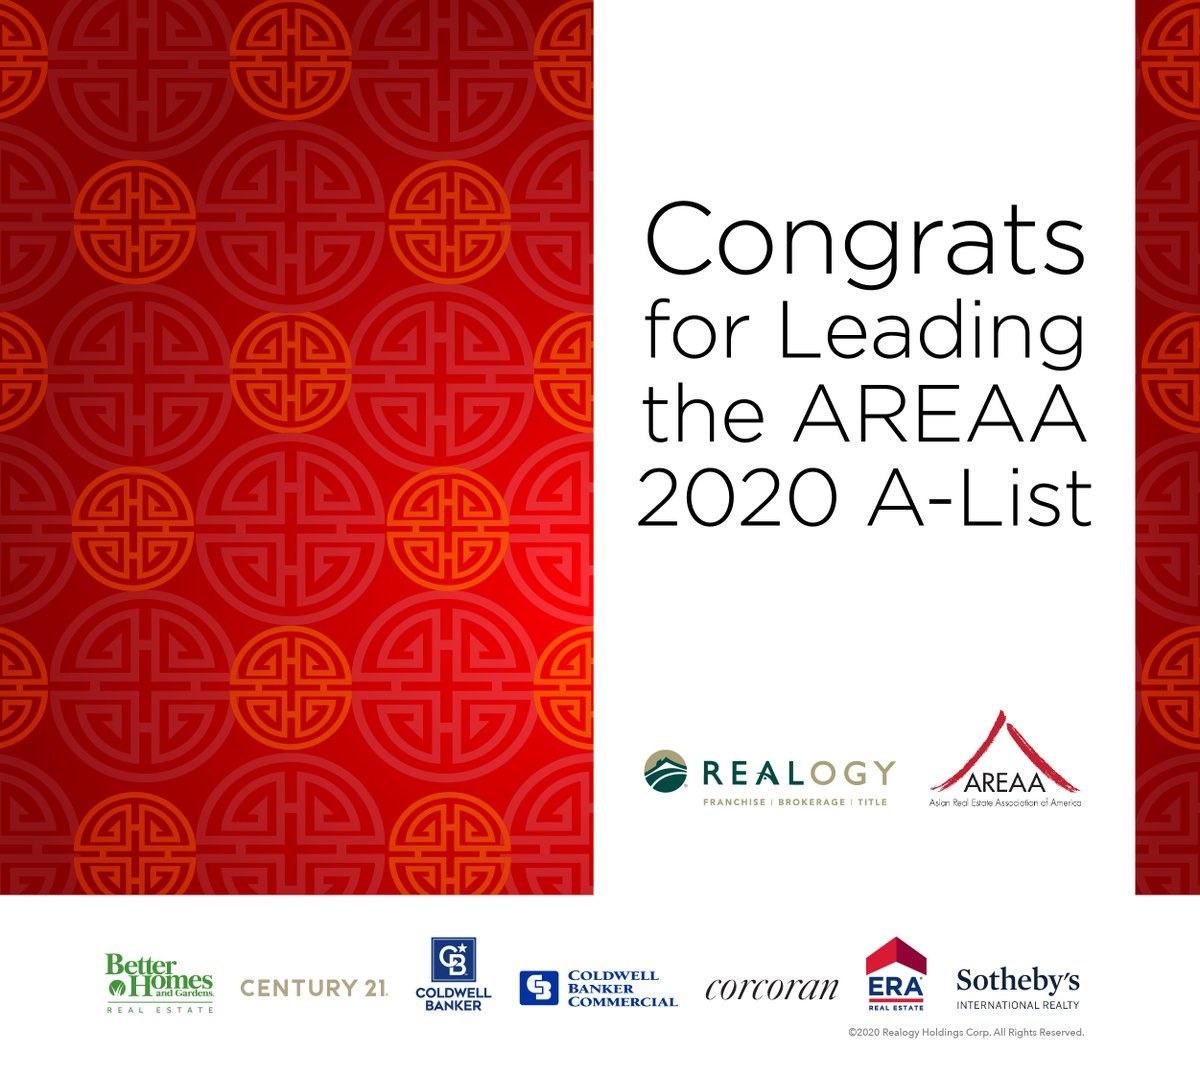 Congratulations to all of our affiliated agents who lead the @areaa 2020 A-List! https://t.co/3Z7PVZai9J @BHGRealEstate @CENTURY21 @coldwellbanker @sothebysrealty https://t.co/C6qvespY8M